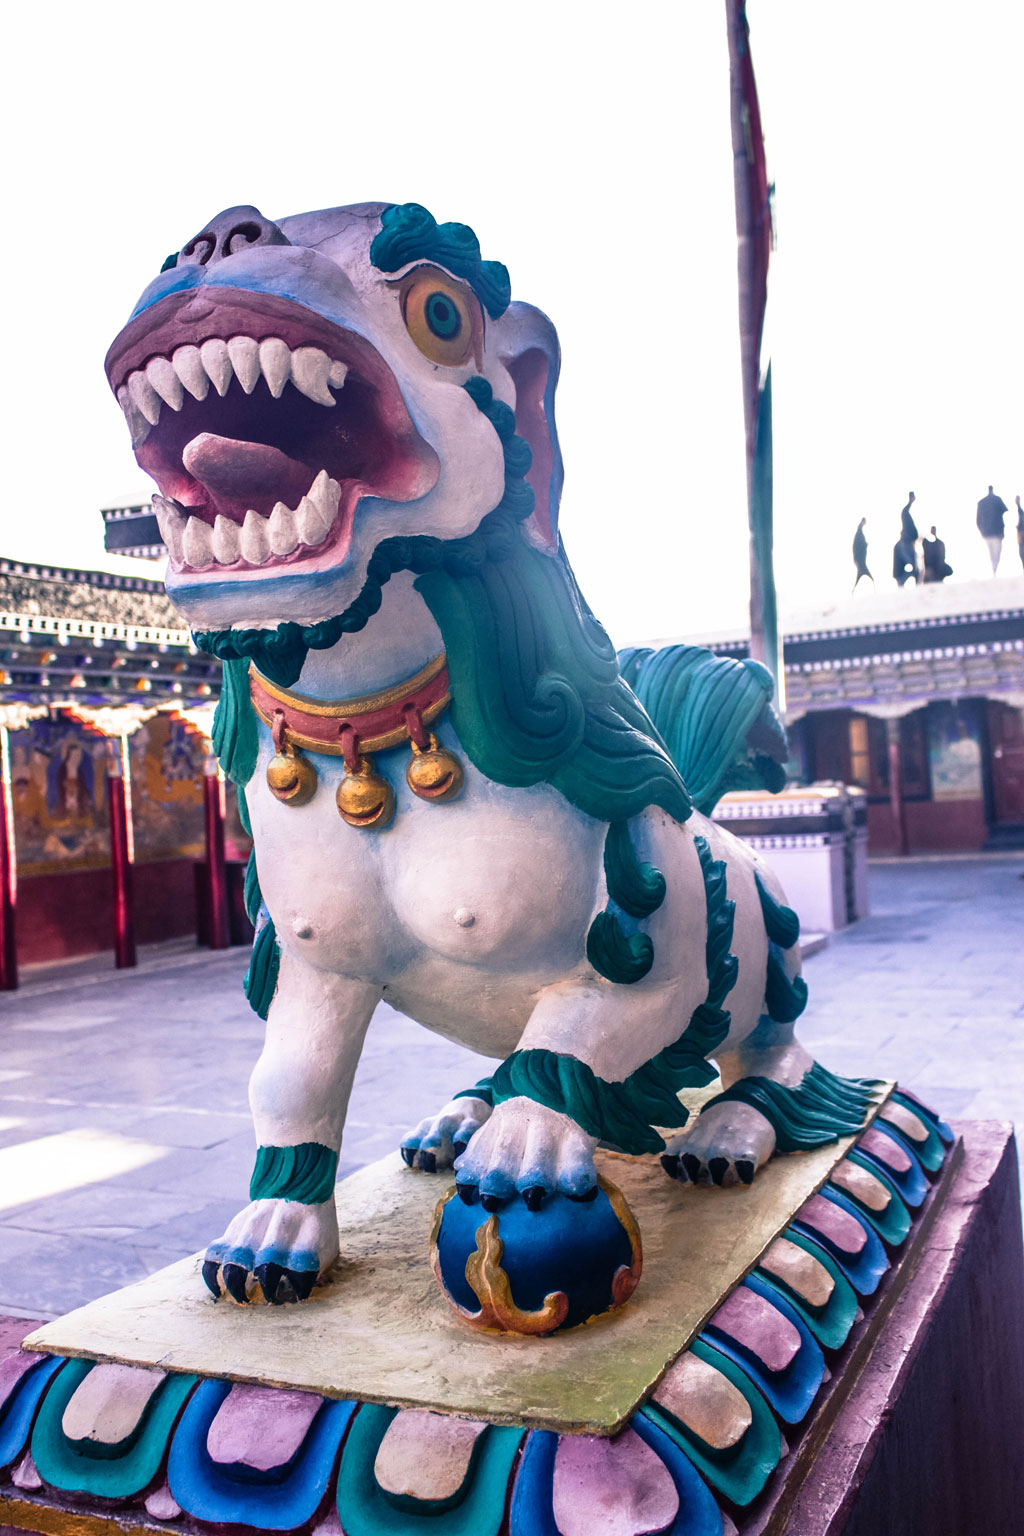 A snow lion statue guards the entrance of the Thiksay Monastery